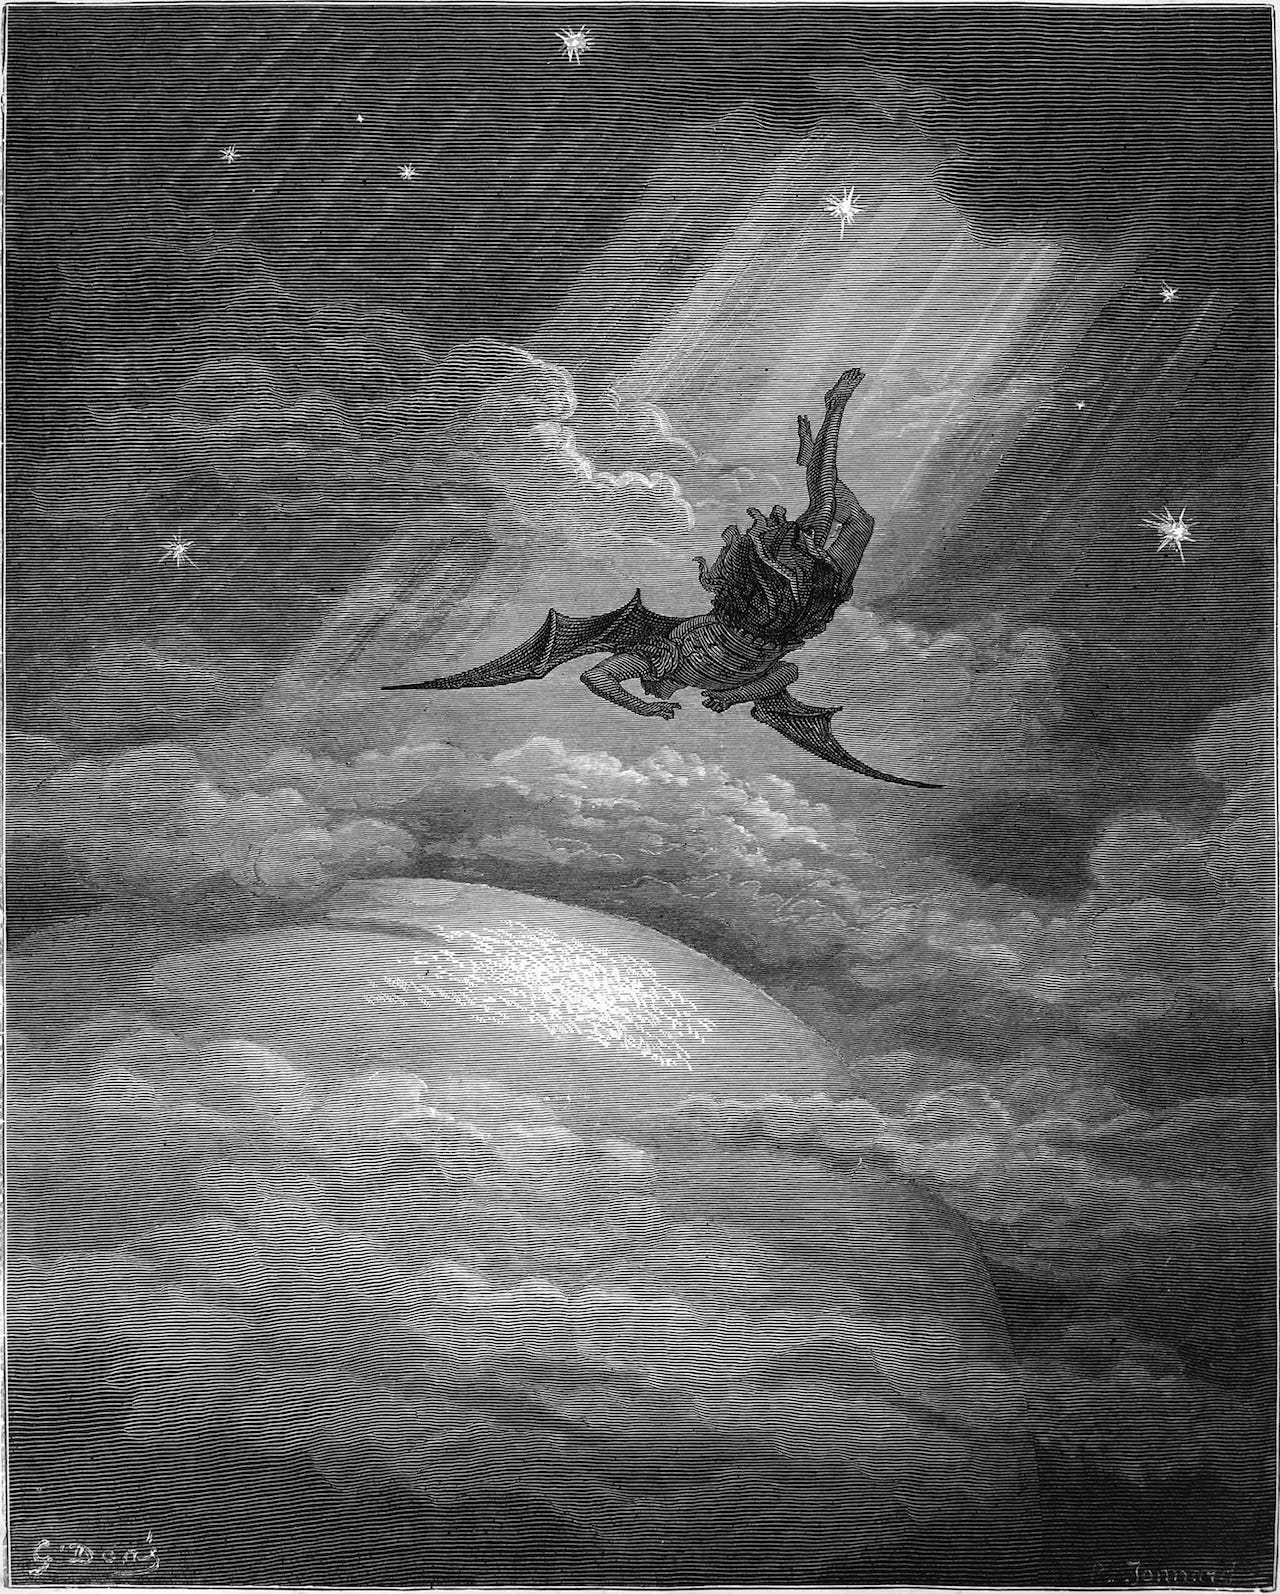 Plate 12 of Gustave Doré's 1866 engravings for Milton's Paradise Lost showing the angel Lucifer being cast down from heaven. Wikipedia commons